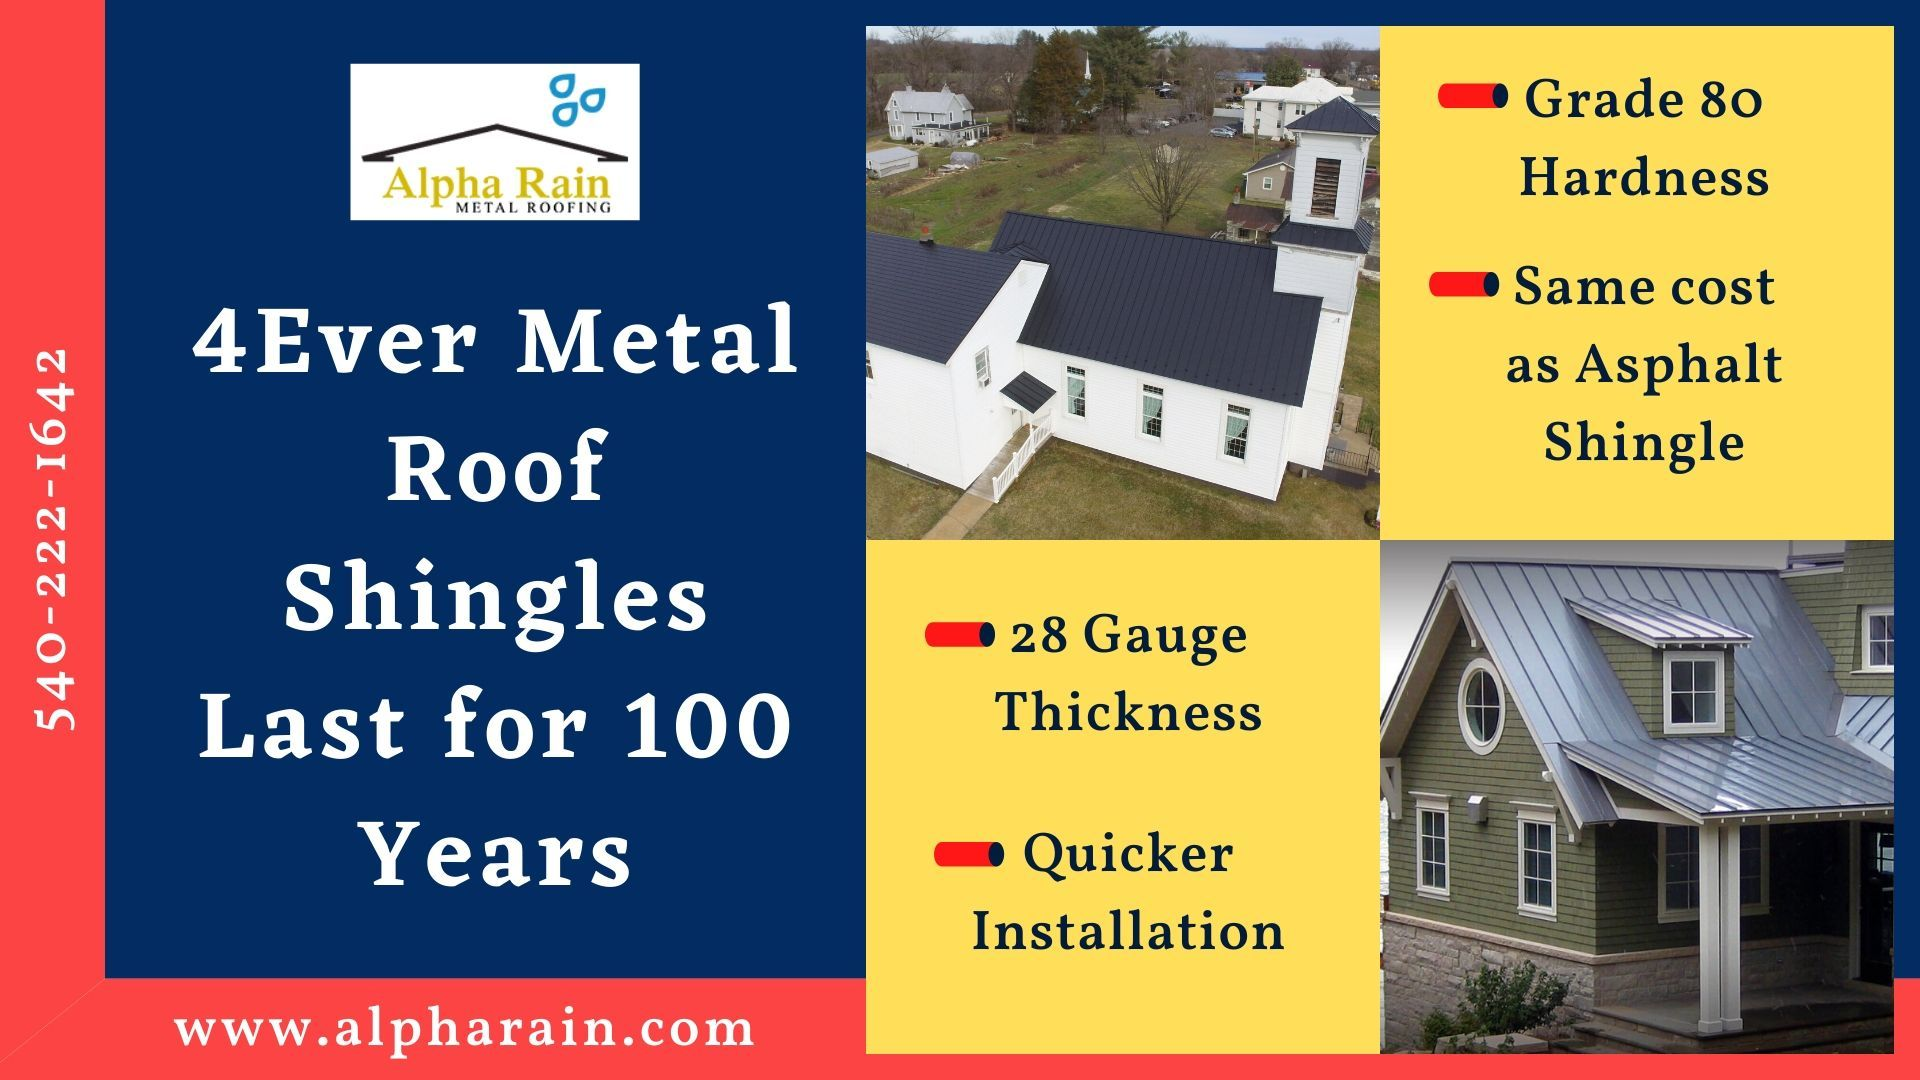 Permanent Metal Shingles Cost Same As Temporary Asphalt In 2020 Metal Shingle Roof Metal Shingles Shingling